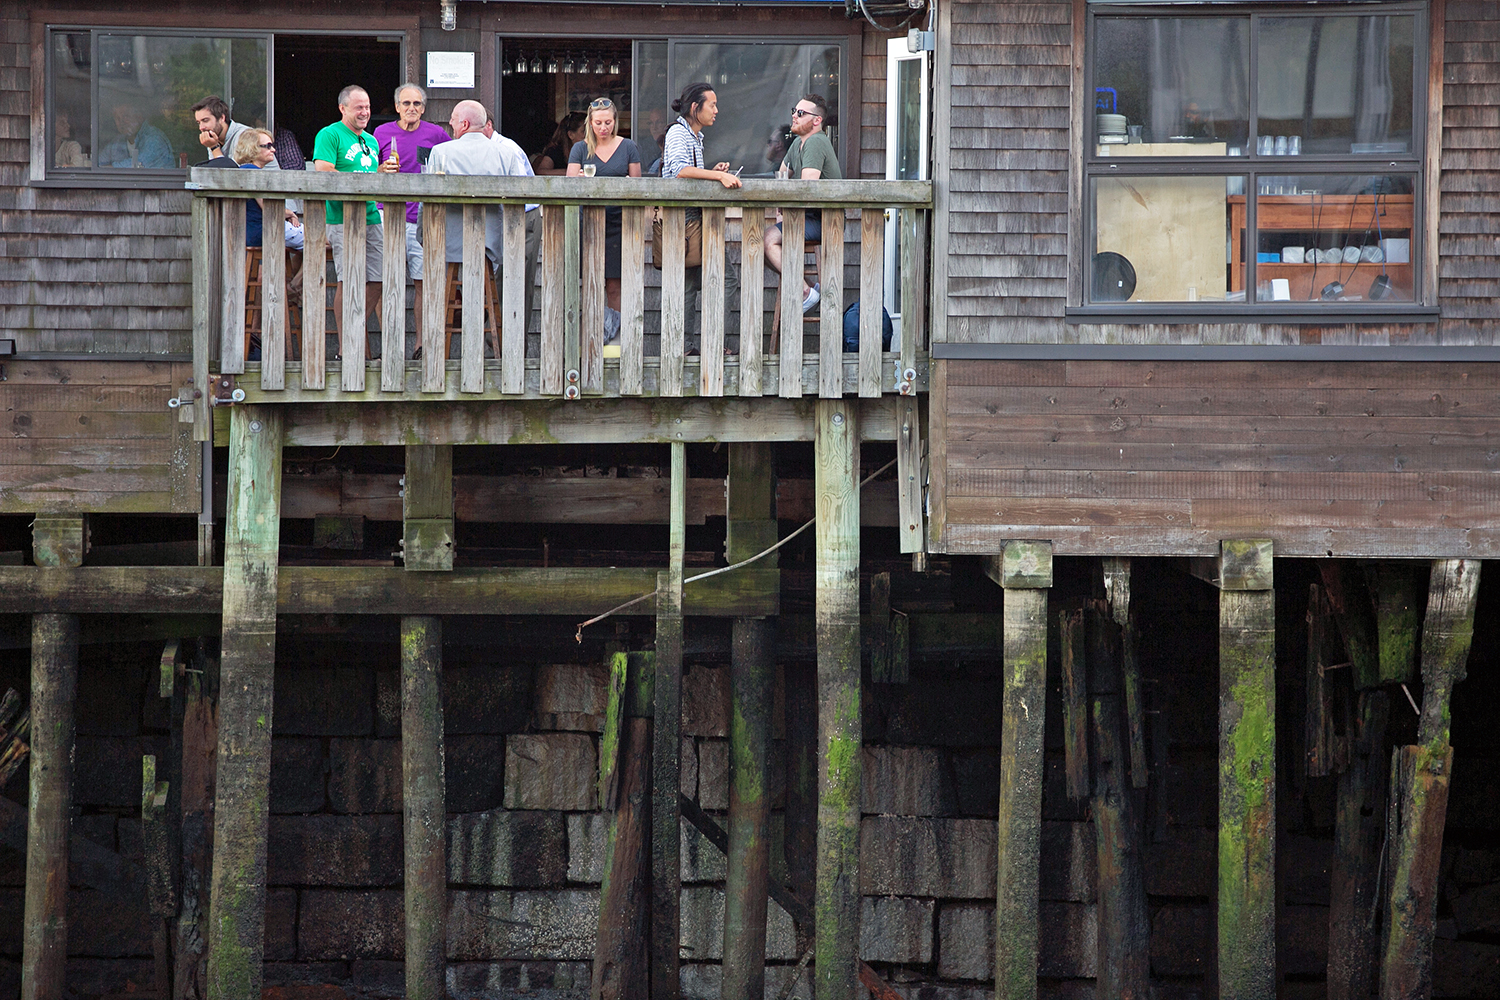 People eat and drink on top of old pilings at Boston Sail Loft restaurant in the North End on June 6, 2016. (Photo by Lauren Owens Lambert/GroundTruth)